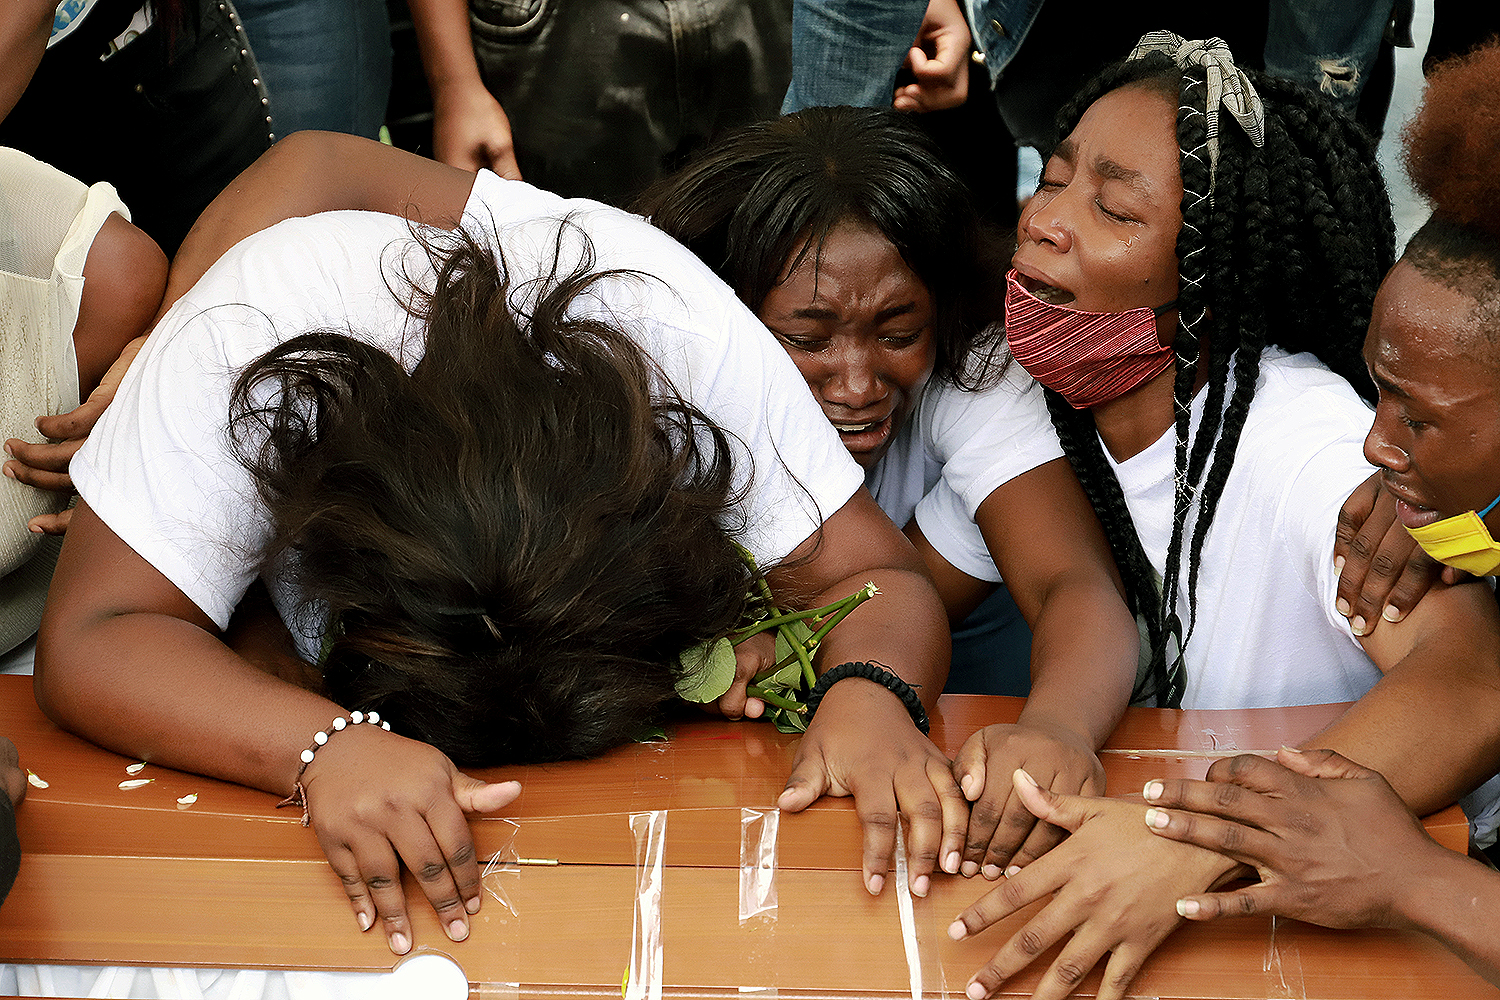 People mourn at the funeral for five teenagers who were found dead in a sugar cane field in Cali, Colombia, on Aug. 14. Juan Bautista Diaz/REUTERS